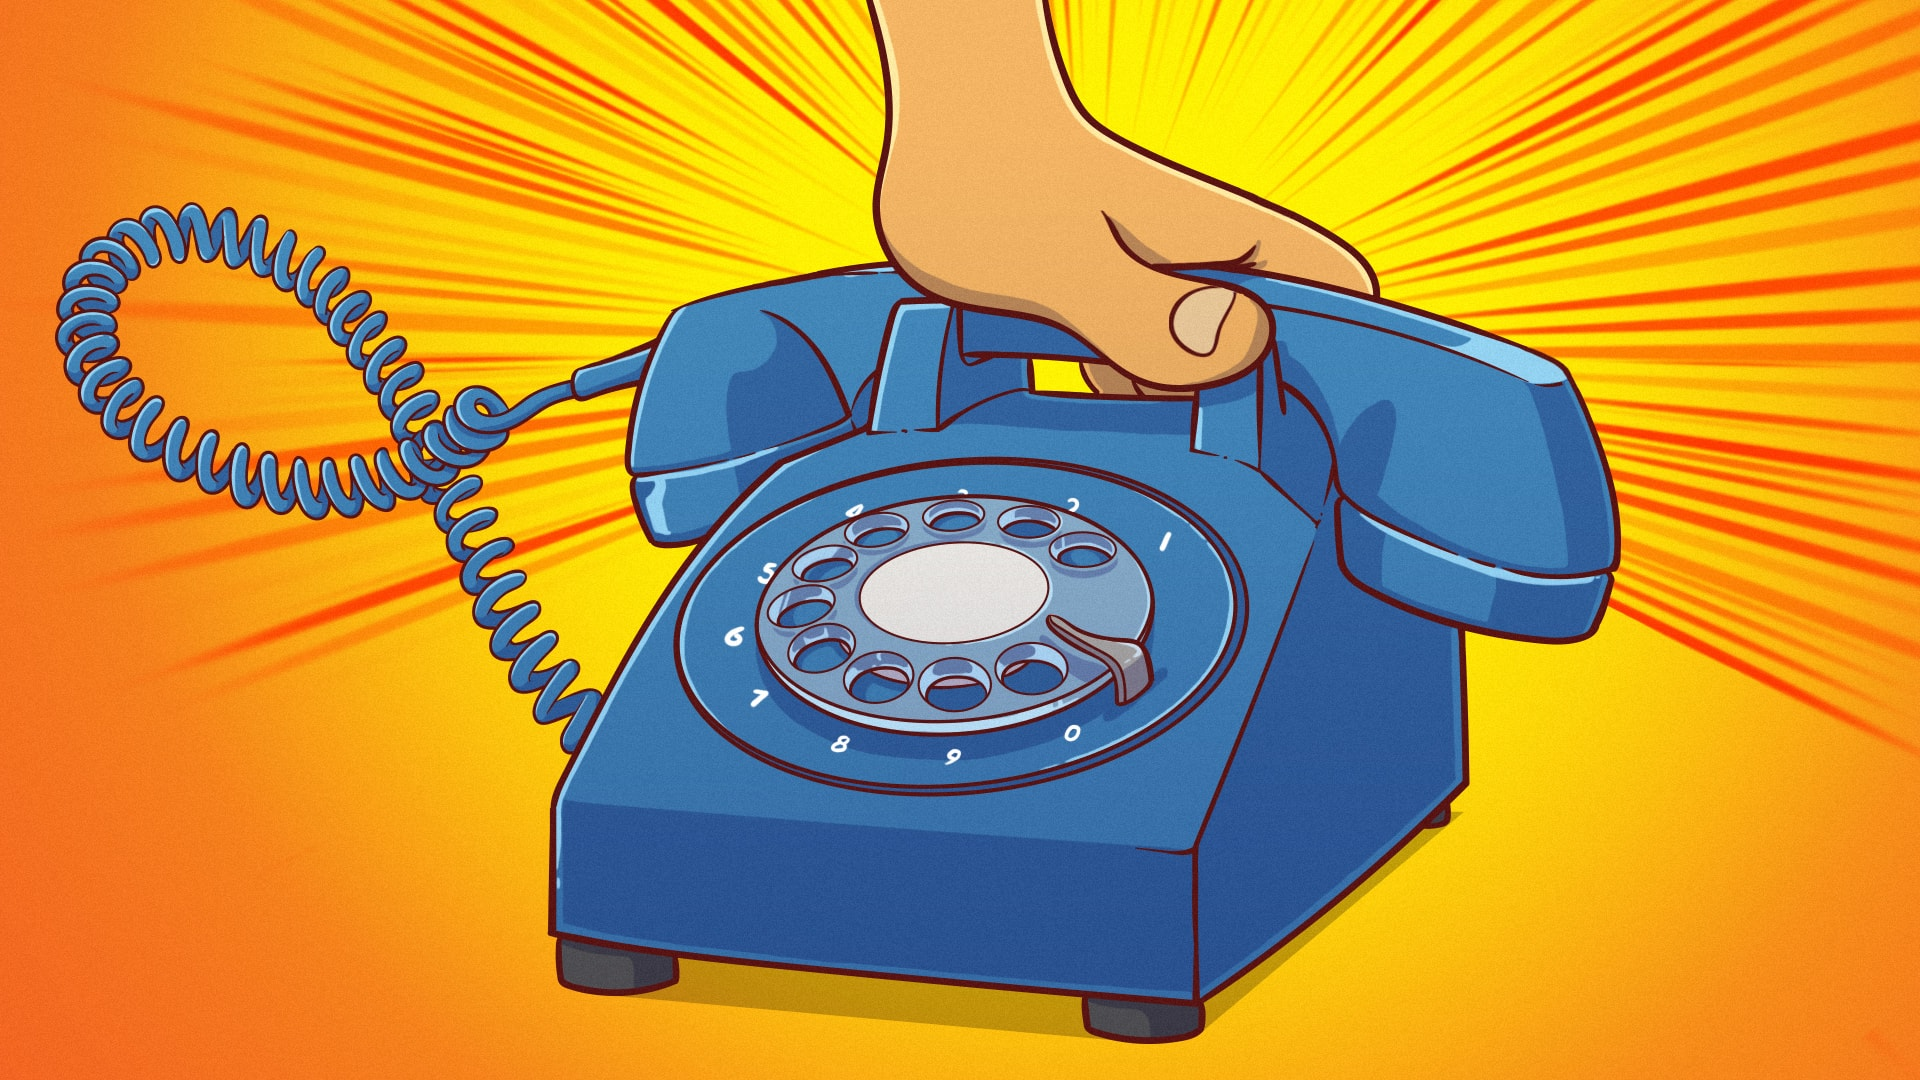 LanguageLine Solutions - How Healthcare Providers Can Fix Their Hang-Up Problem